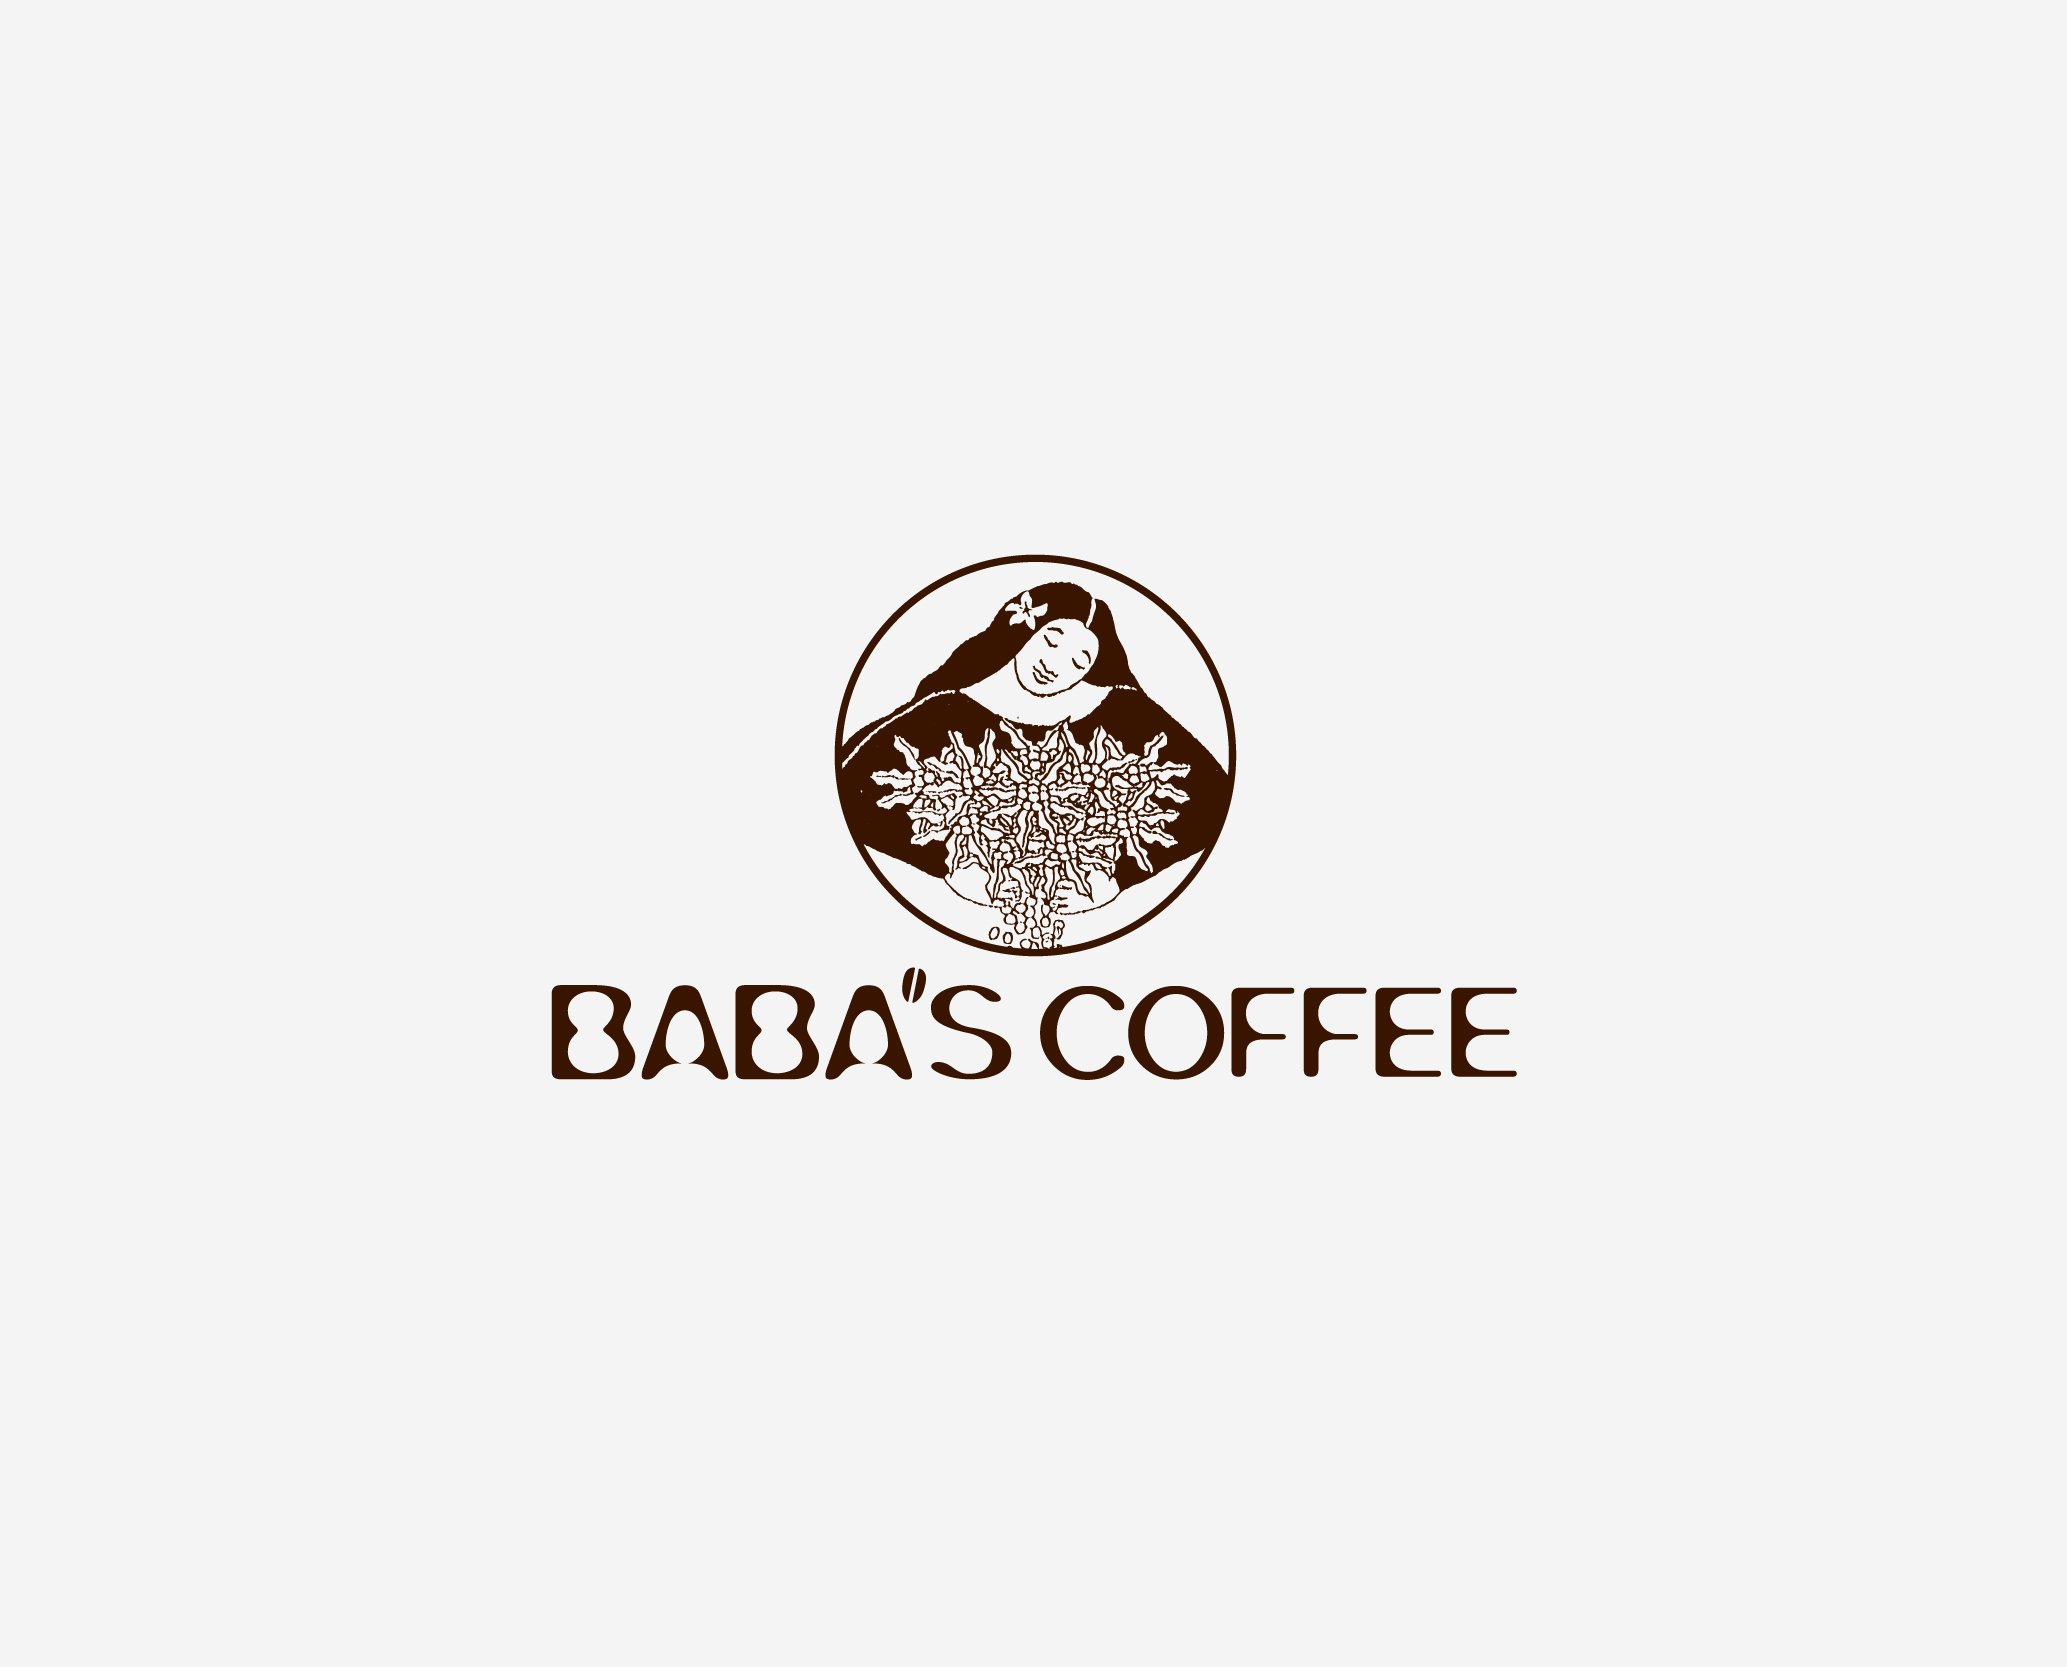 Baba's Coffee